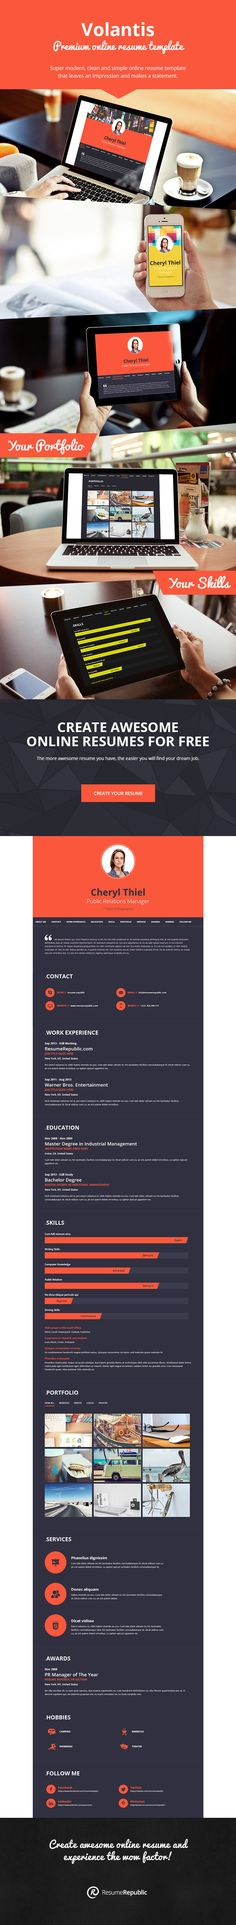 Online Resume Templates 9 Best Premium Resume Templates Images On Pinterest  Career .